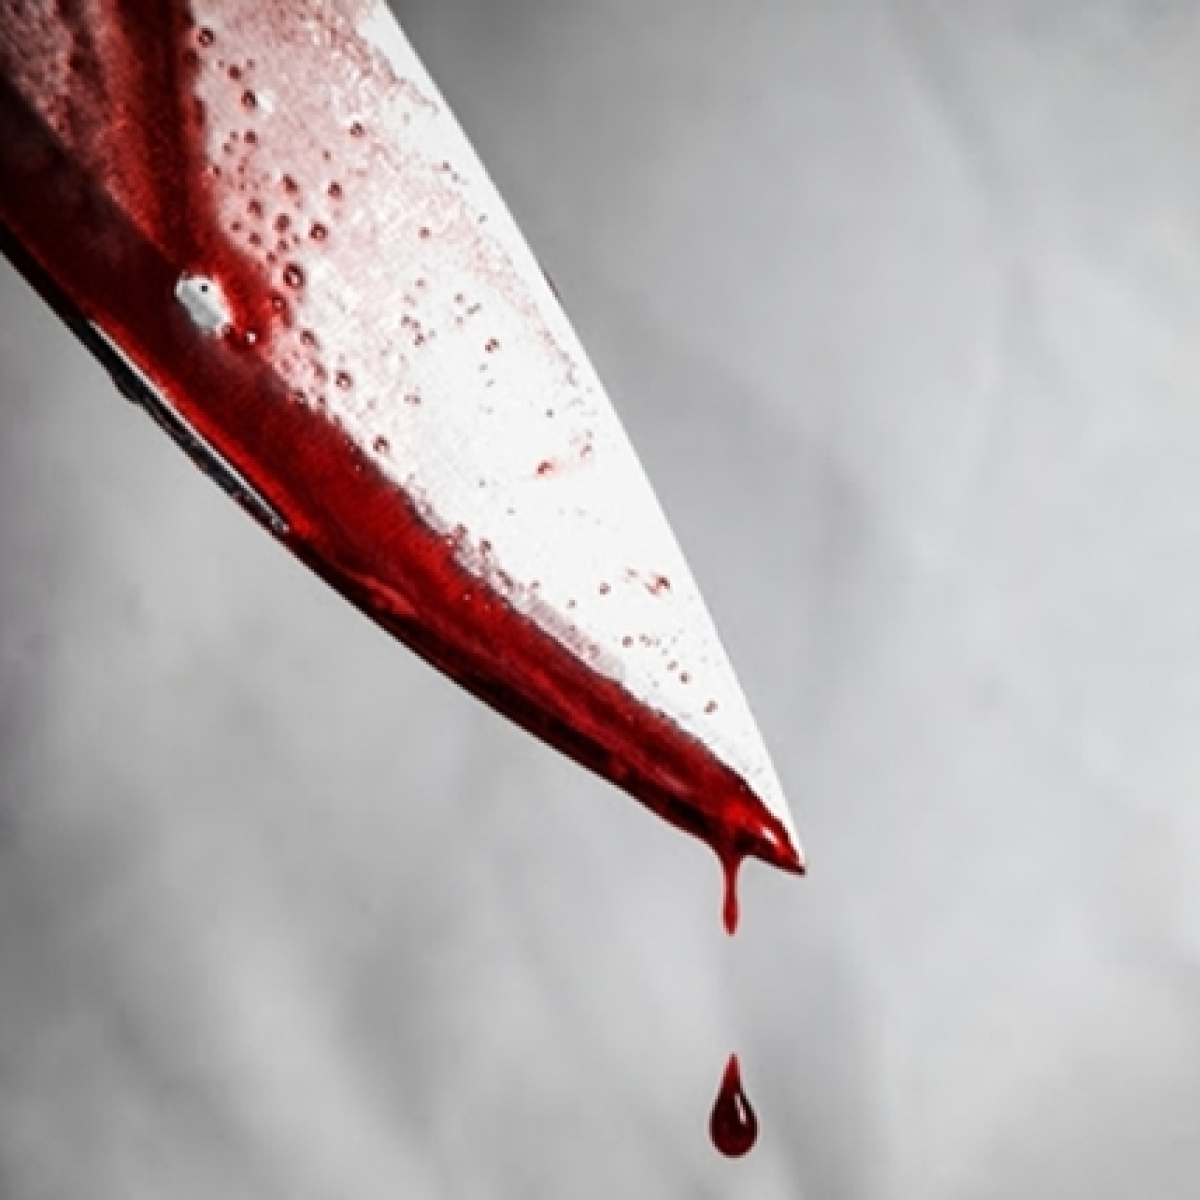 Mumbai Crime: Friends stab teen after row over video